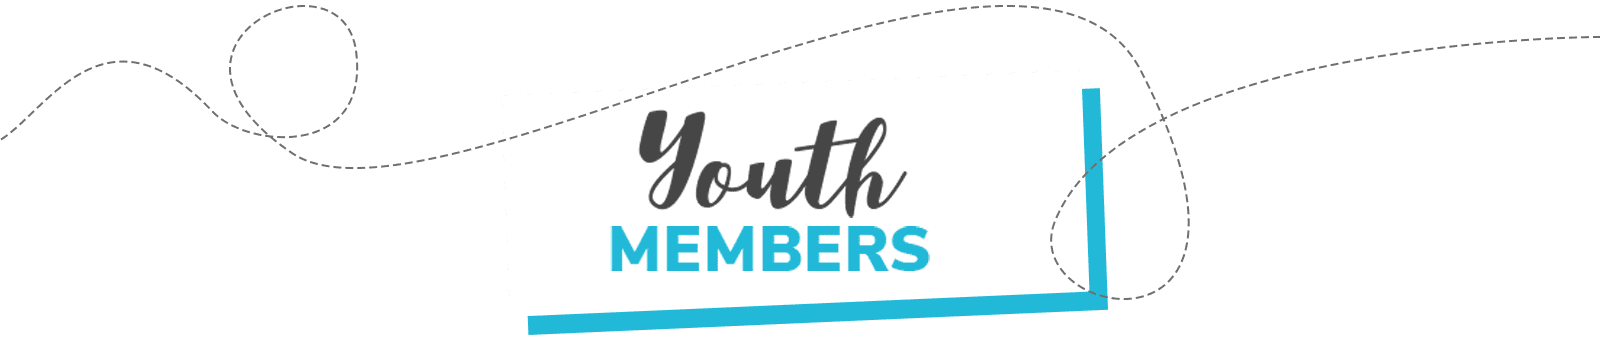 Youth Members